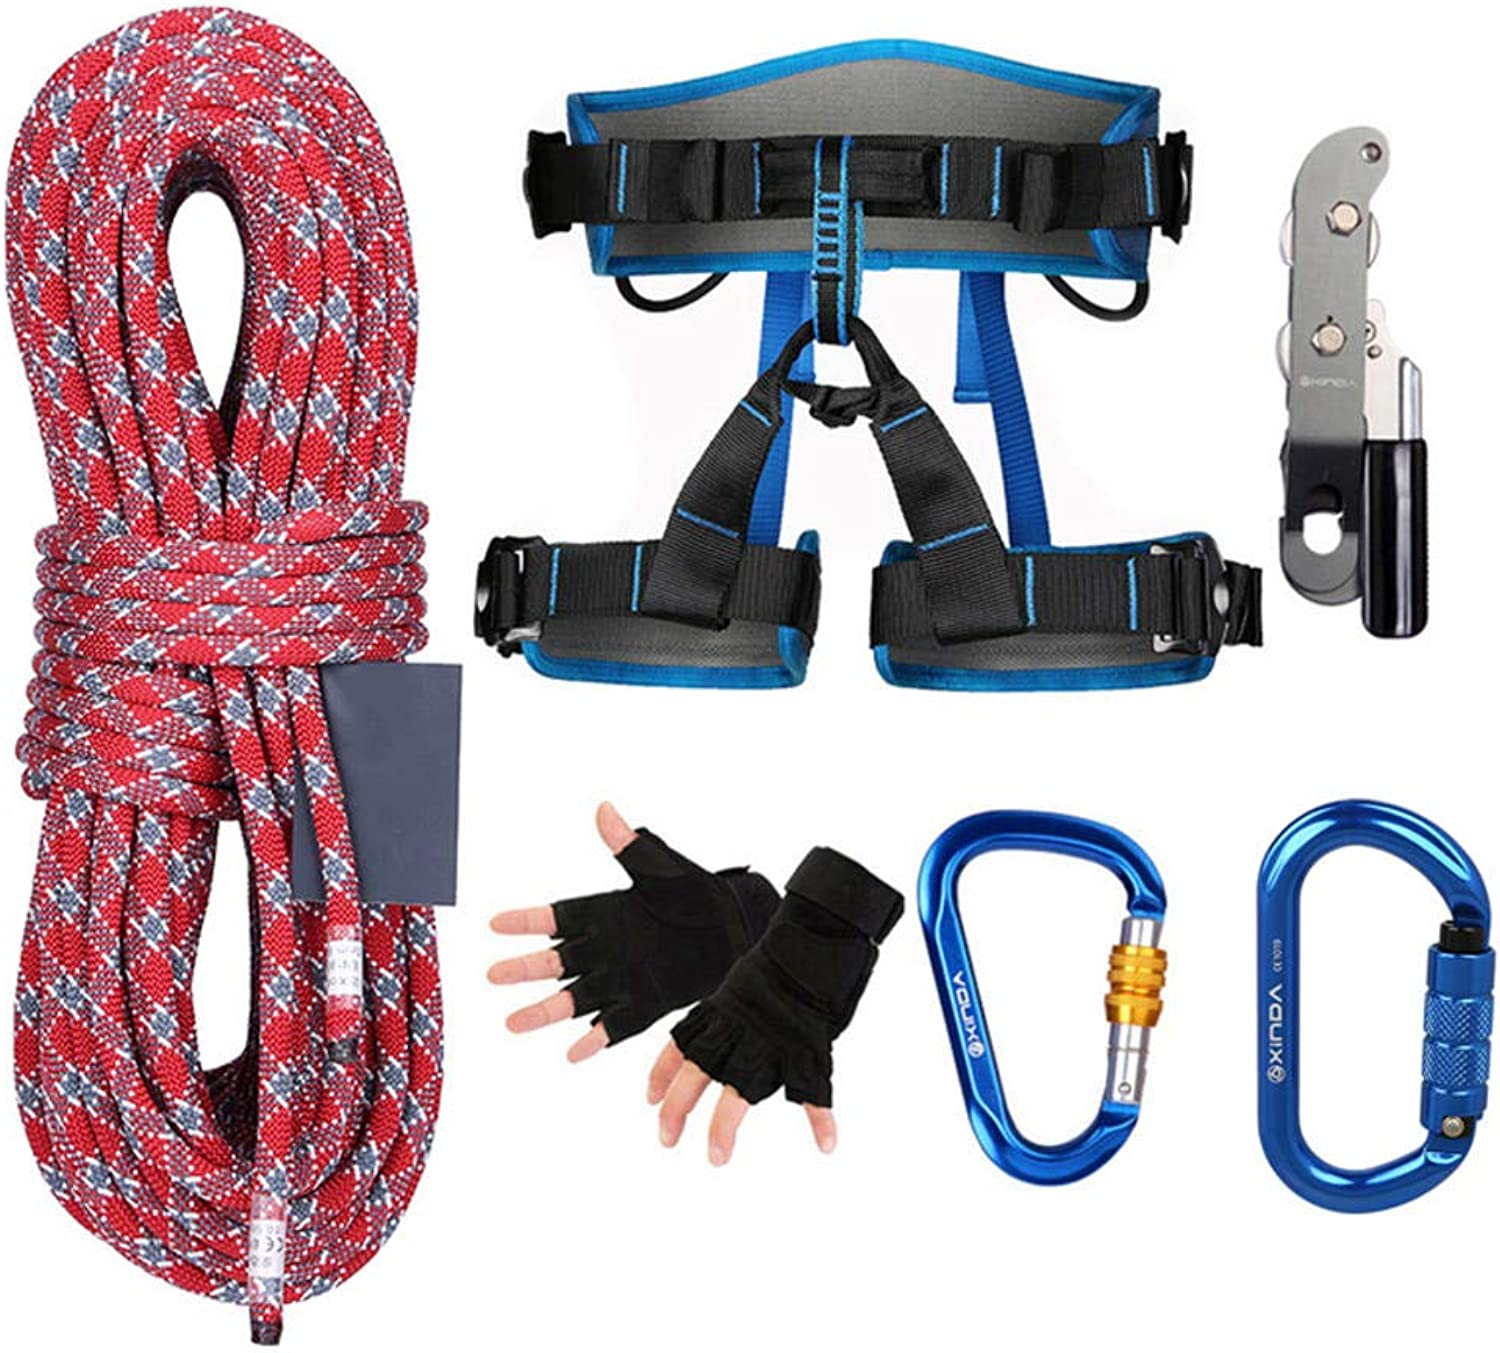 Climbing Kit Outdoor Cable Drop Set Mountaineering Static Climbing Rope Speed Drop Rope Safety Equipment  7 Pieces